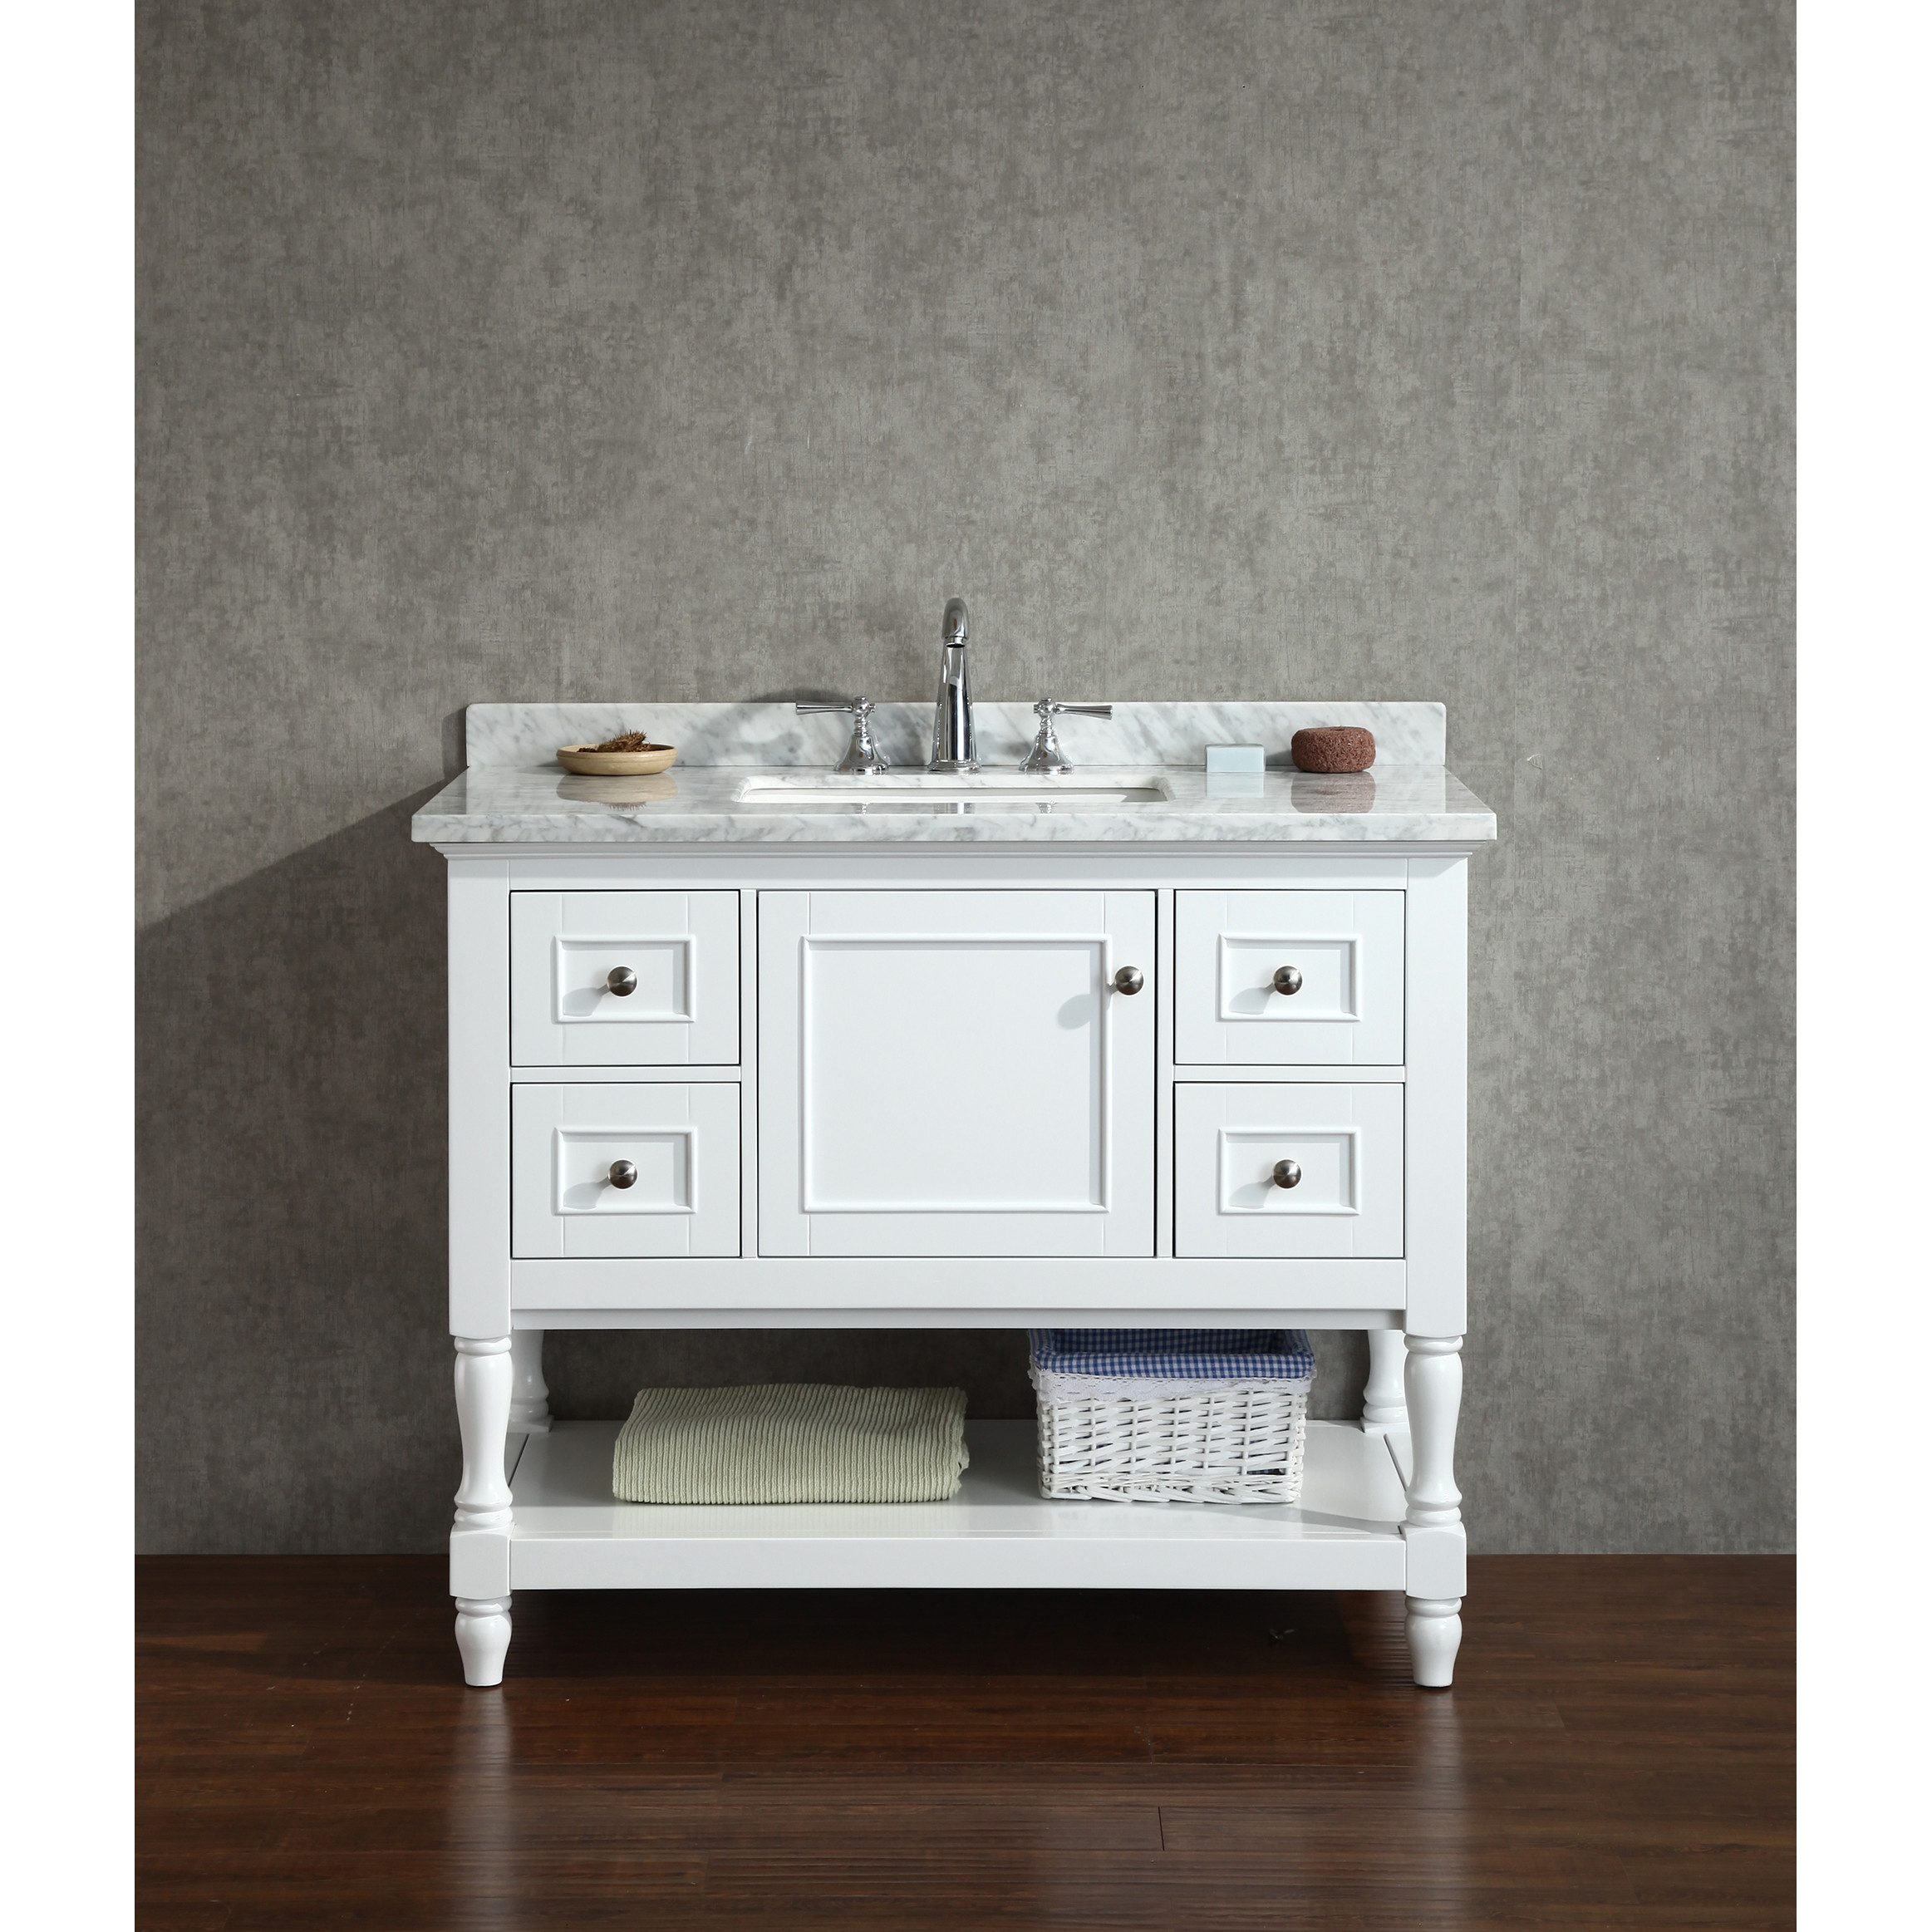 Modern Bathroom: Lowes Bathroom Vanities And Sinks | Square Bathroom Sinks in Elegant 42 Bathroom Vanity Cabinets